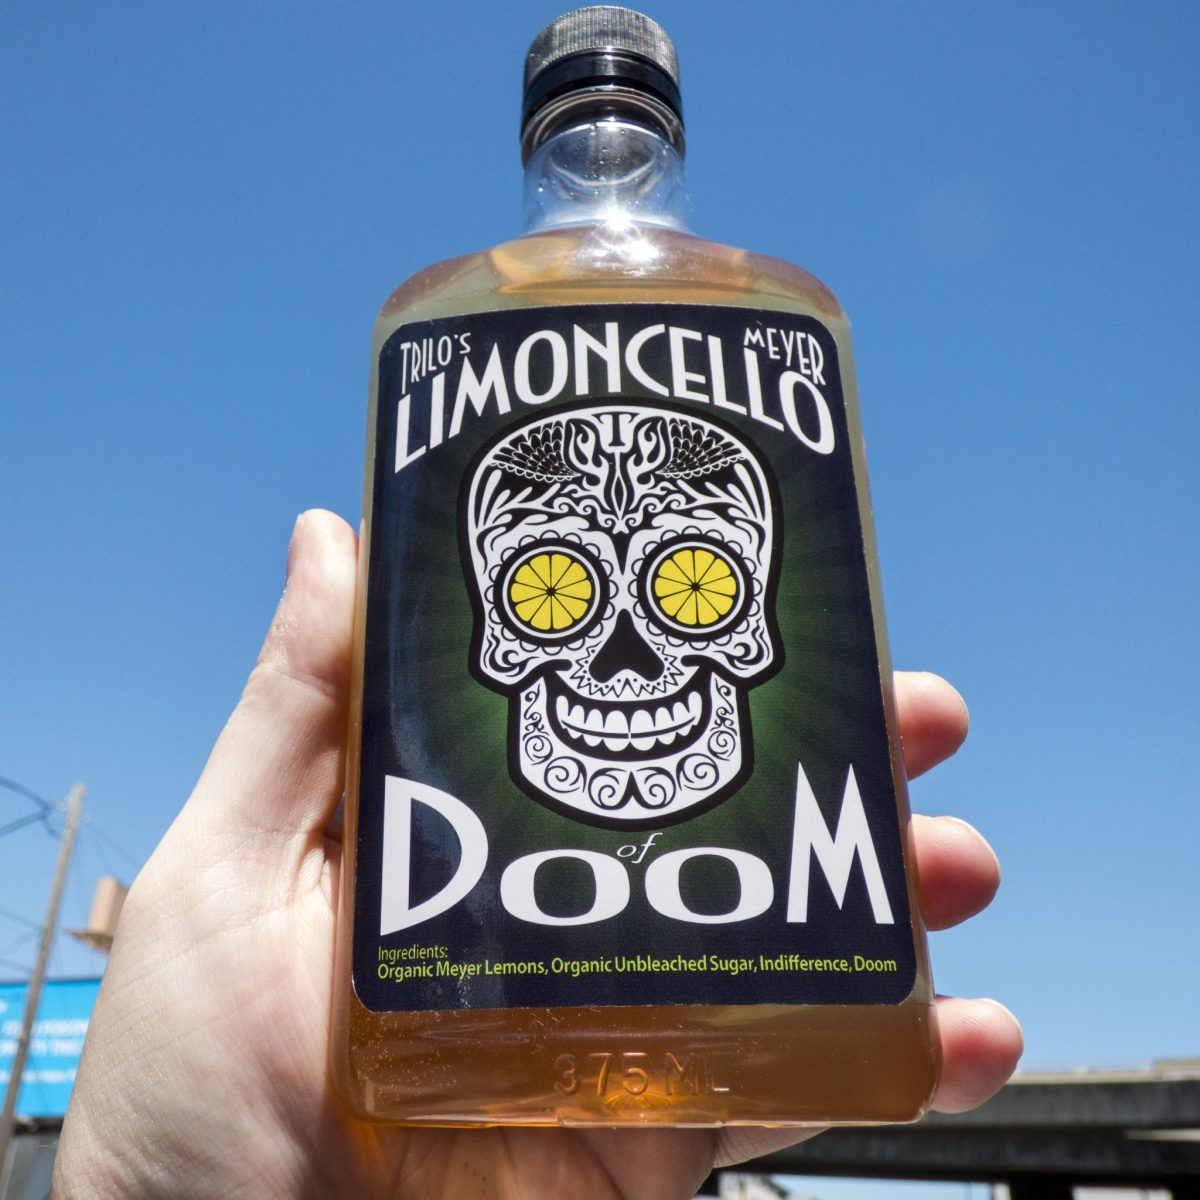 Trilo's Limoncello Of Doom  This delightful and decadent lemon liqueur isn't difficult to make, but Trilo's Limoncello Of Doom requires dedication - it's the ultimate slow food recipe!